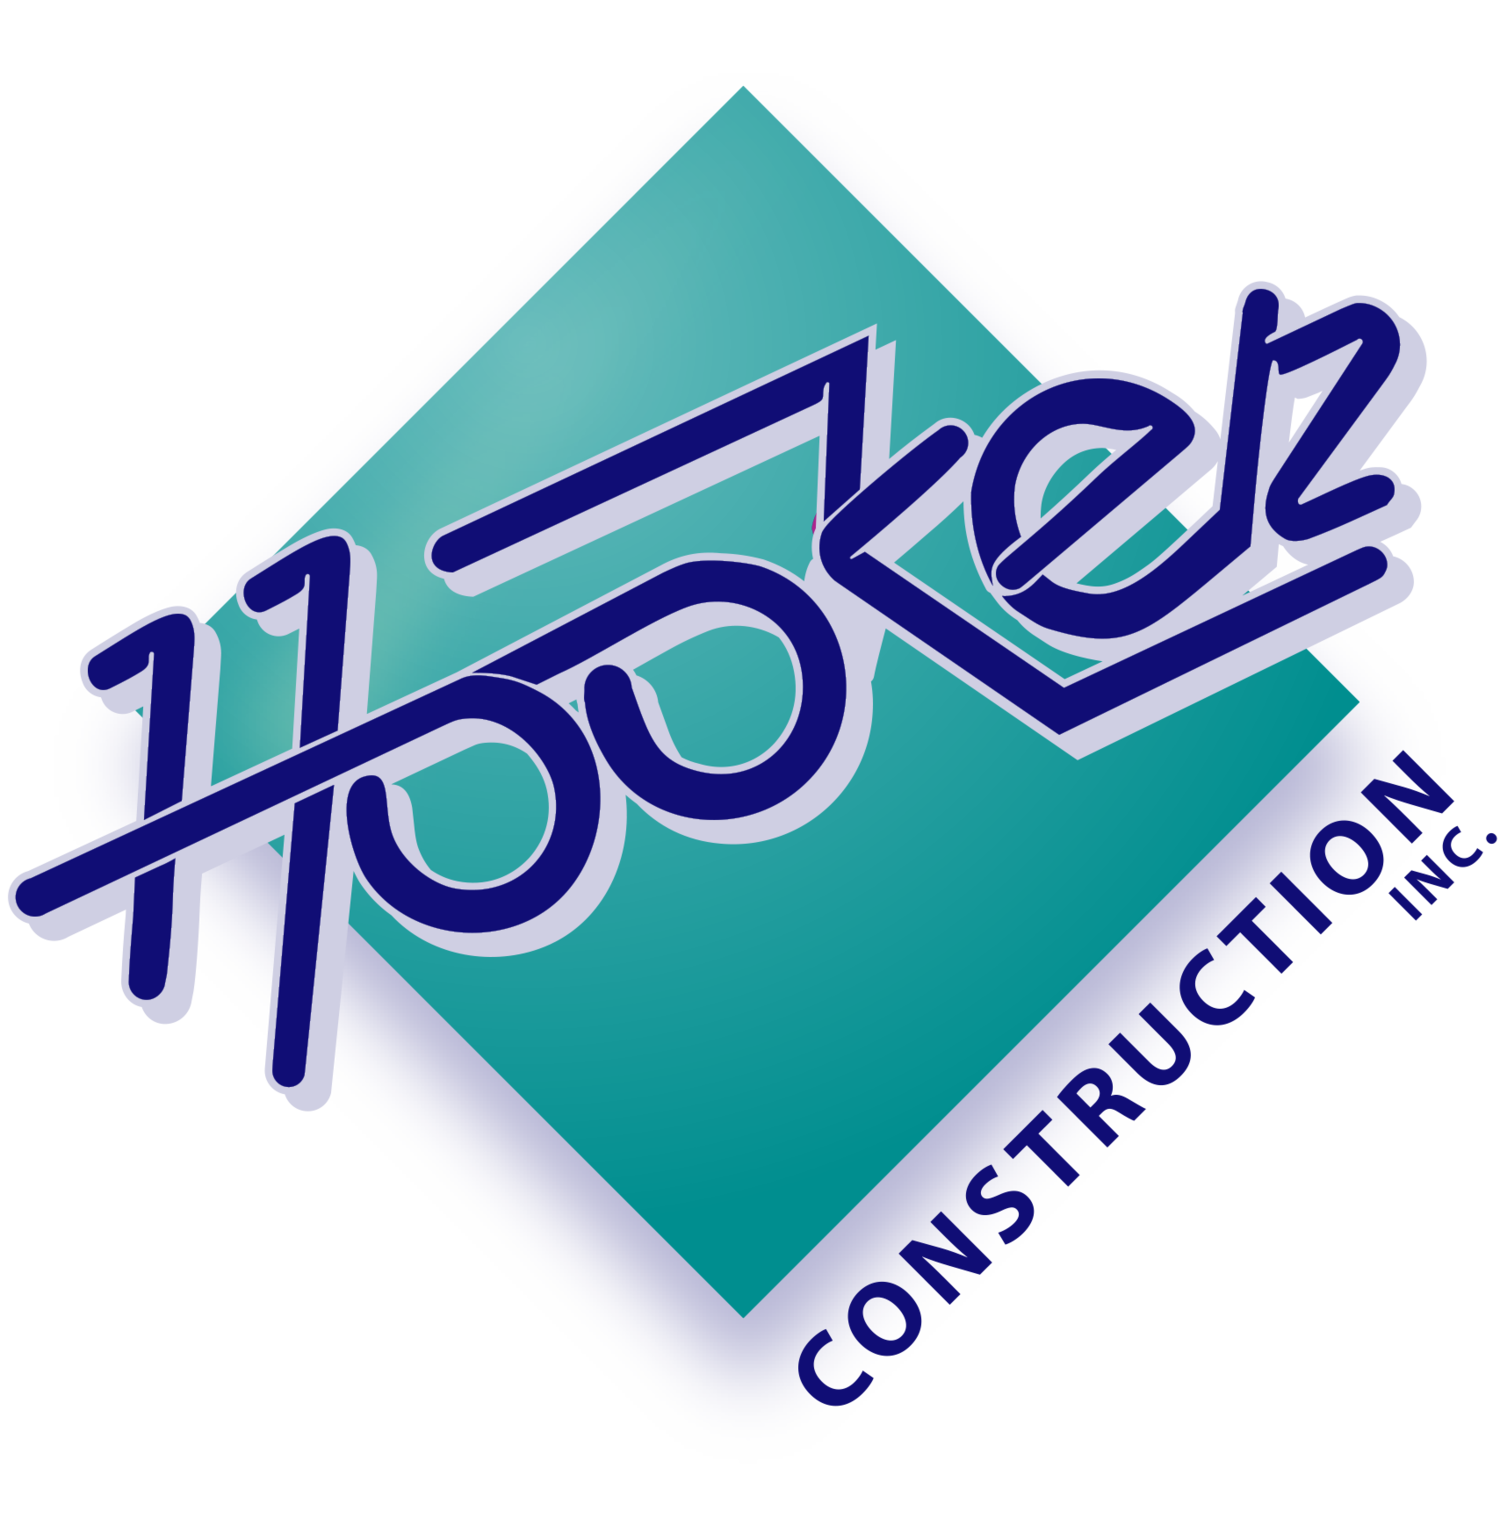 HOOKER CONSTRUCTION WEB DESIGN